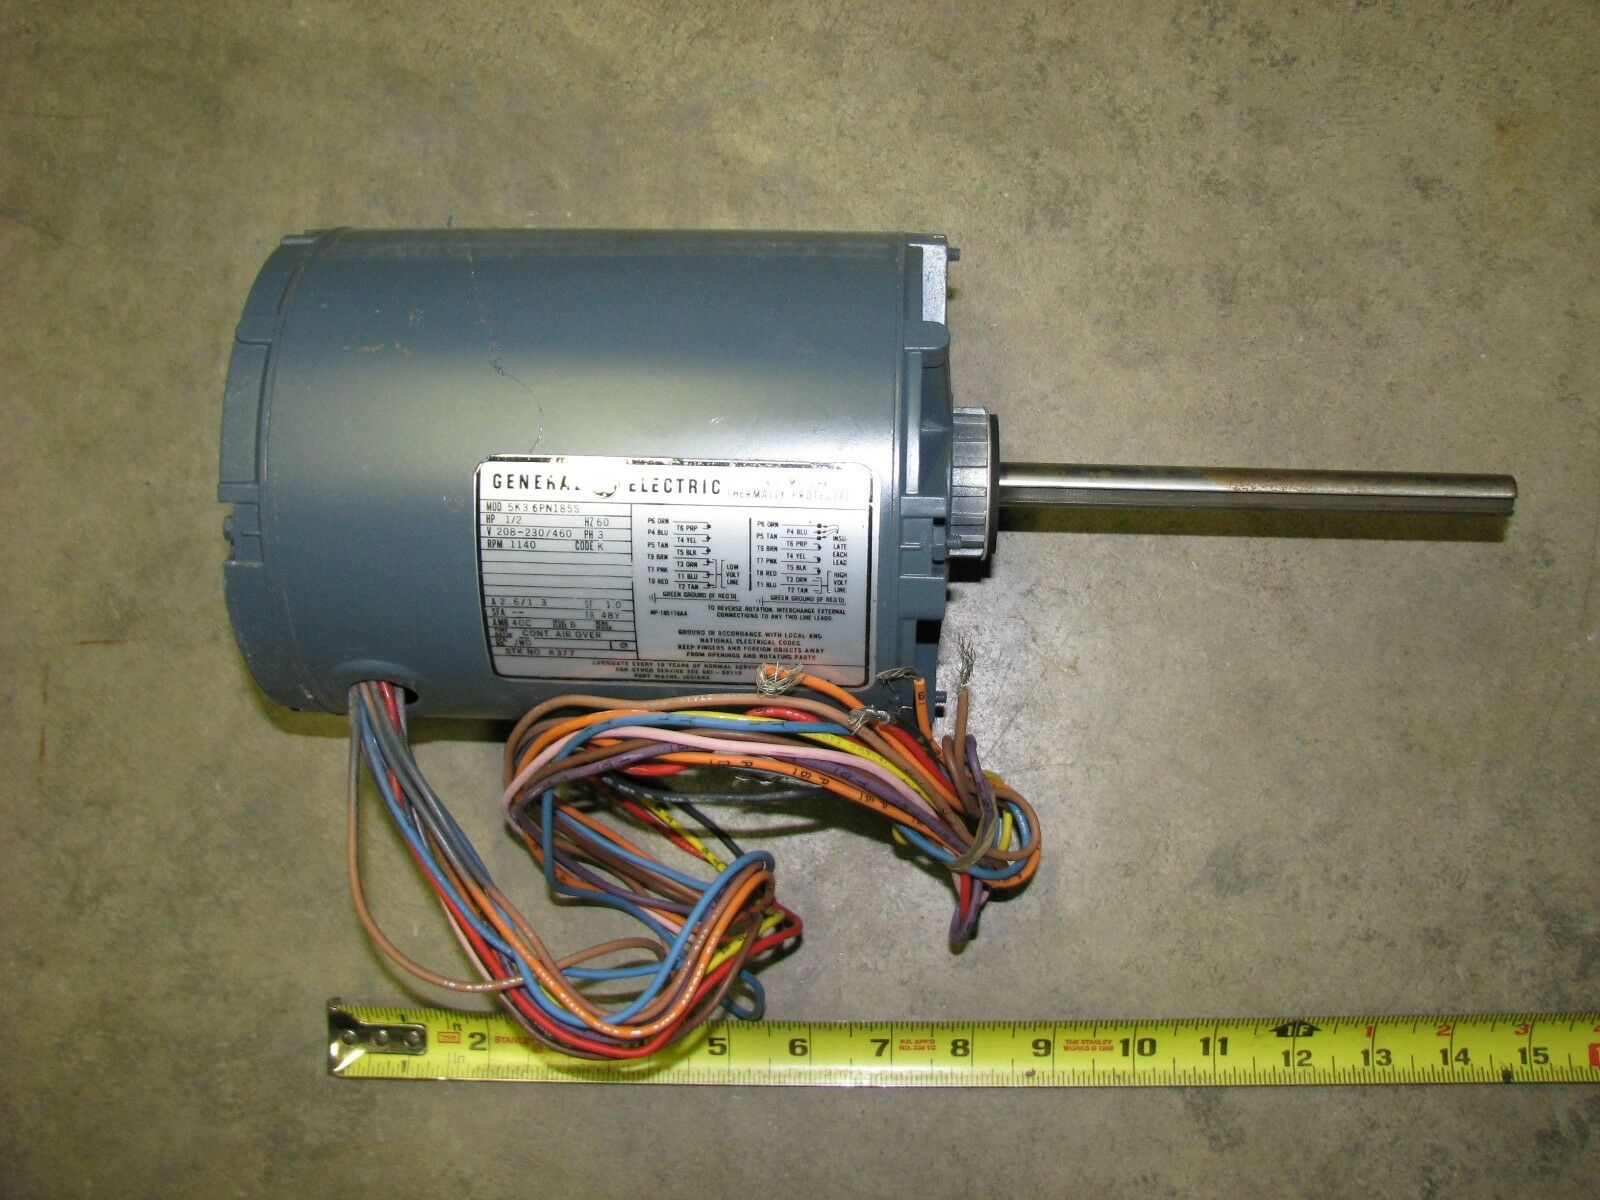 GE General Electric Motor 1/2 HP 1140 RPM 5K36PN185S 230/460 Volt AC 3 Phase